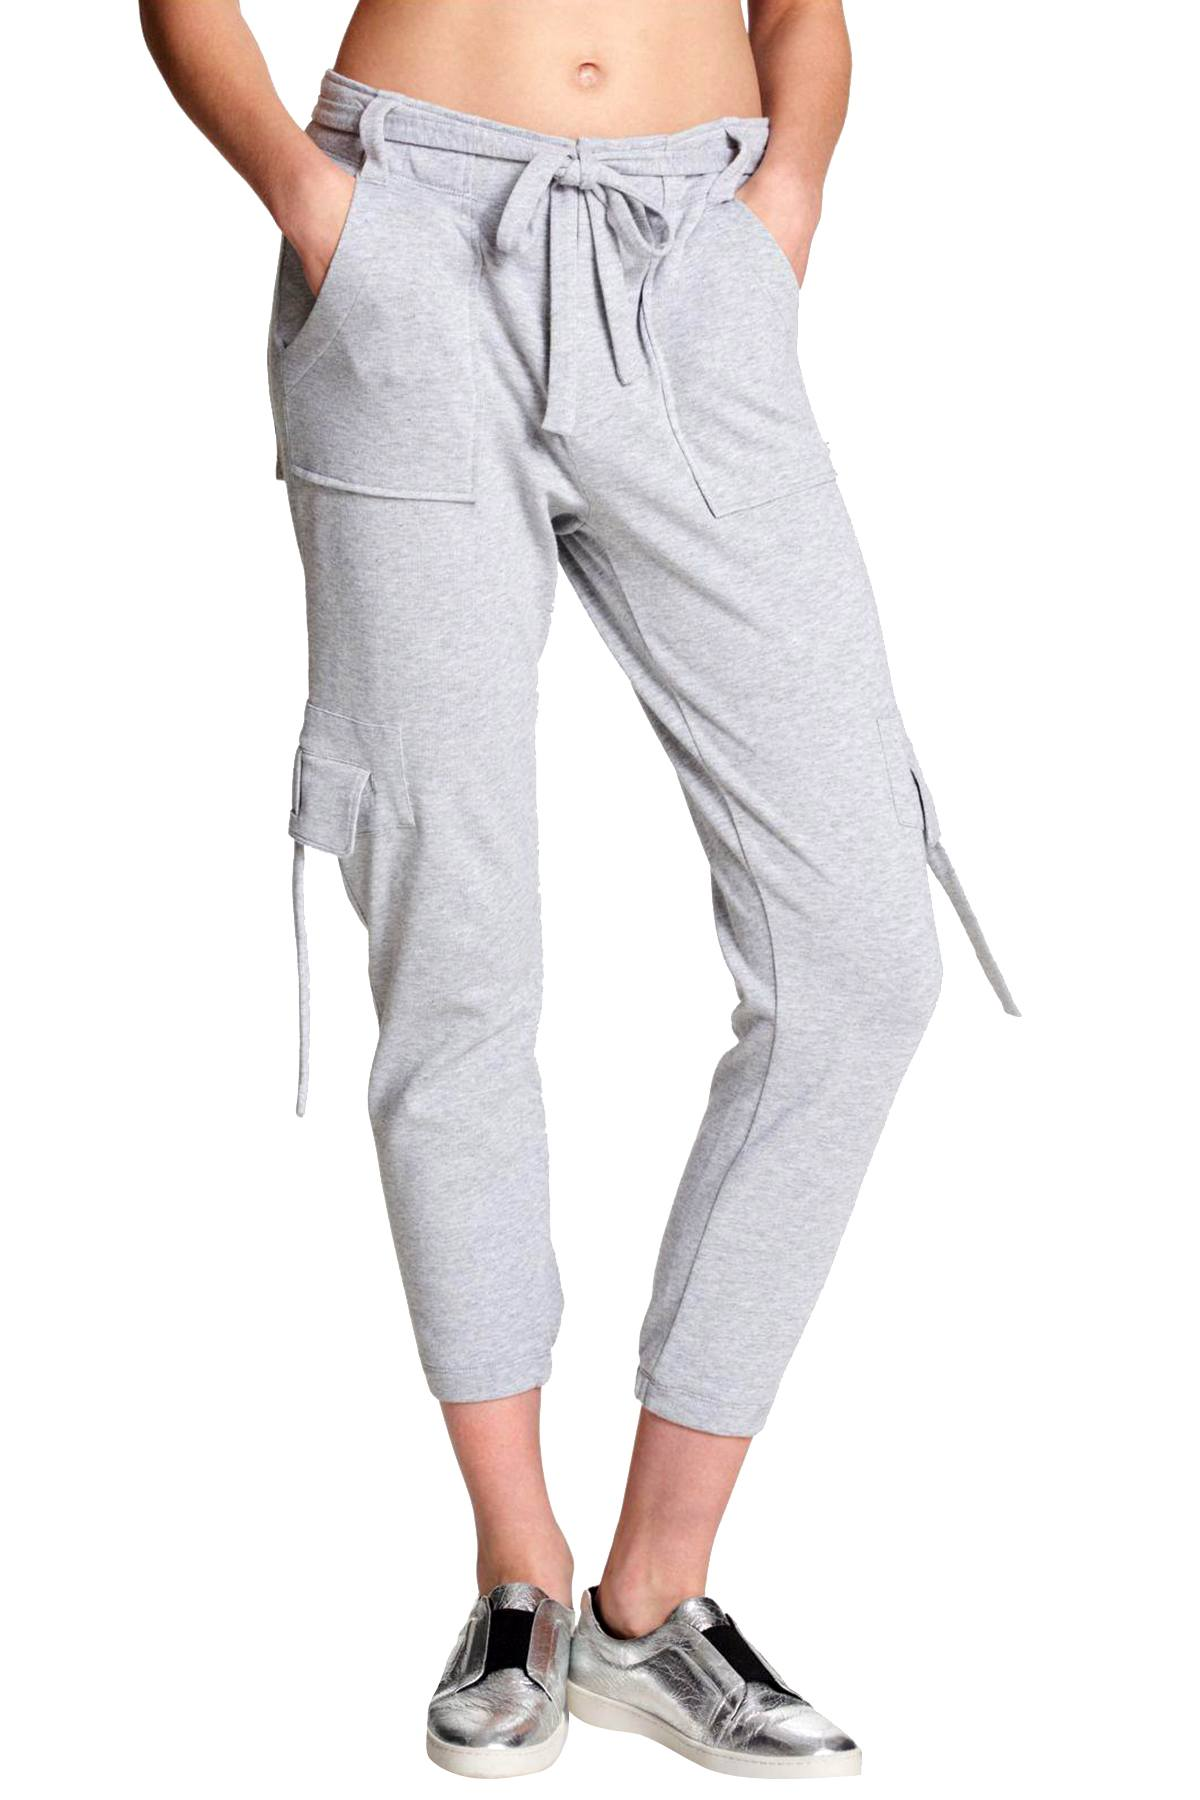 DKNY Sport Dove Heather Grey Cropped Cargo Performance Sweatpant